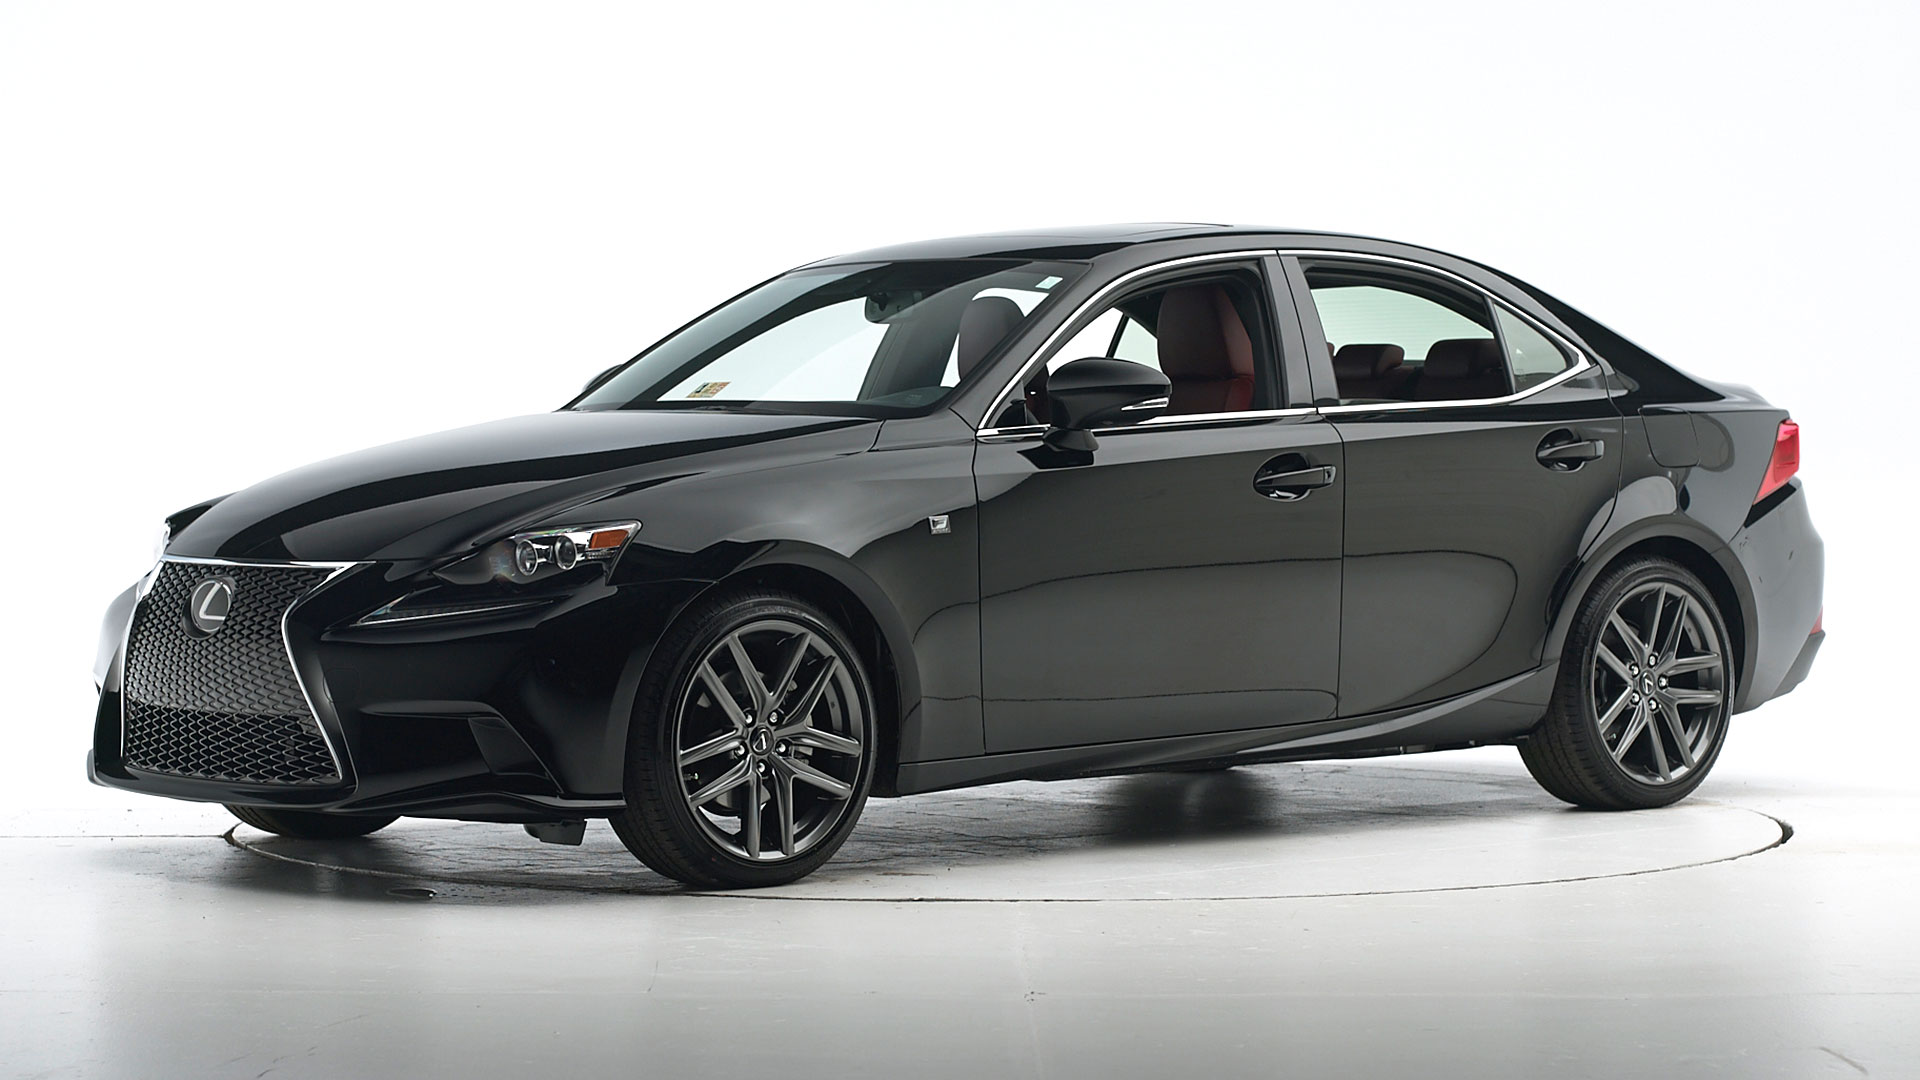 2015 Lexus IS 4-door sedan